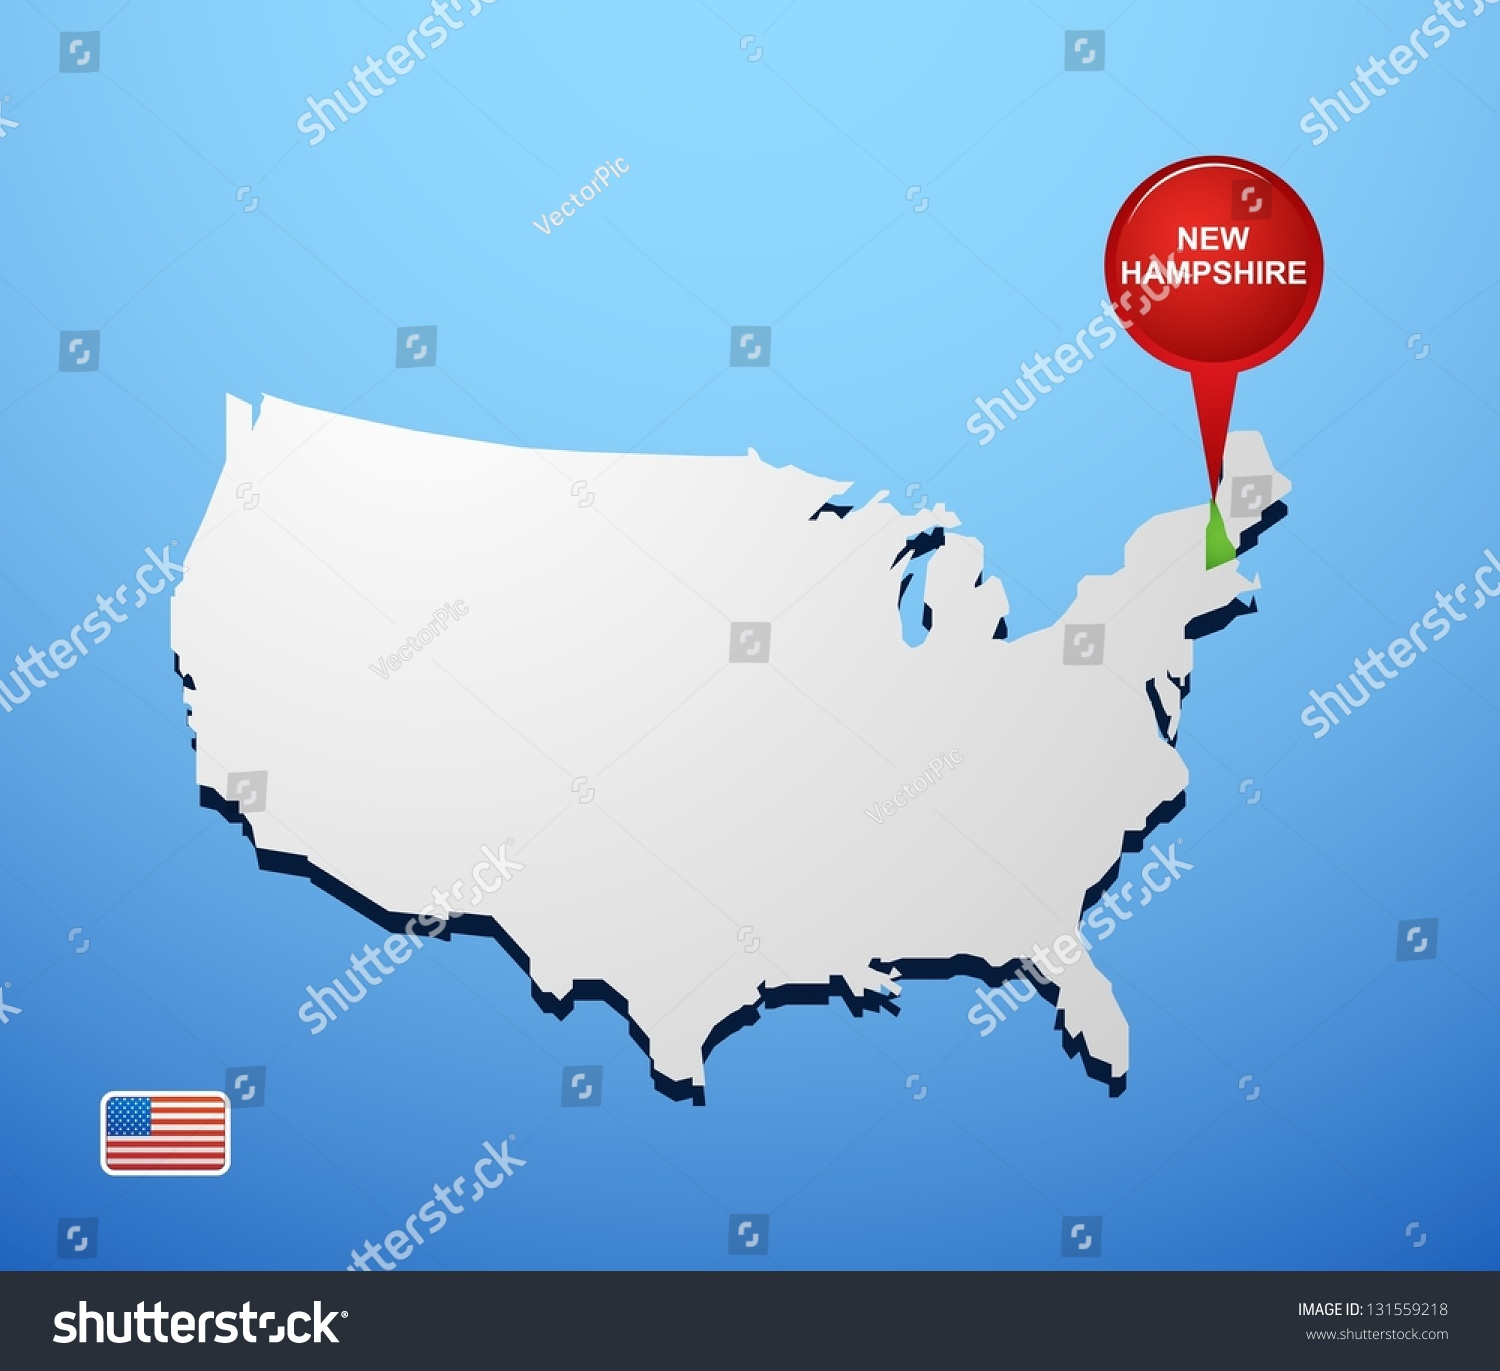 New Hampshire On Us Map Map Of University Of Washington - Us map new hampshire